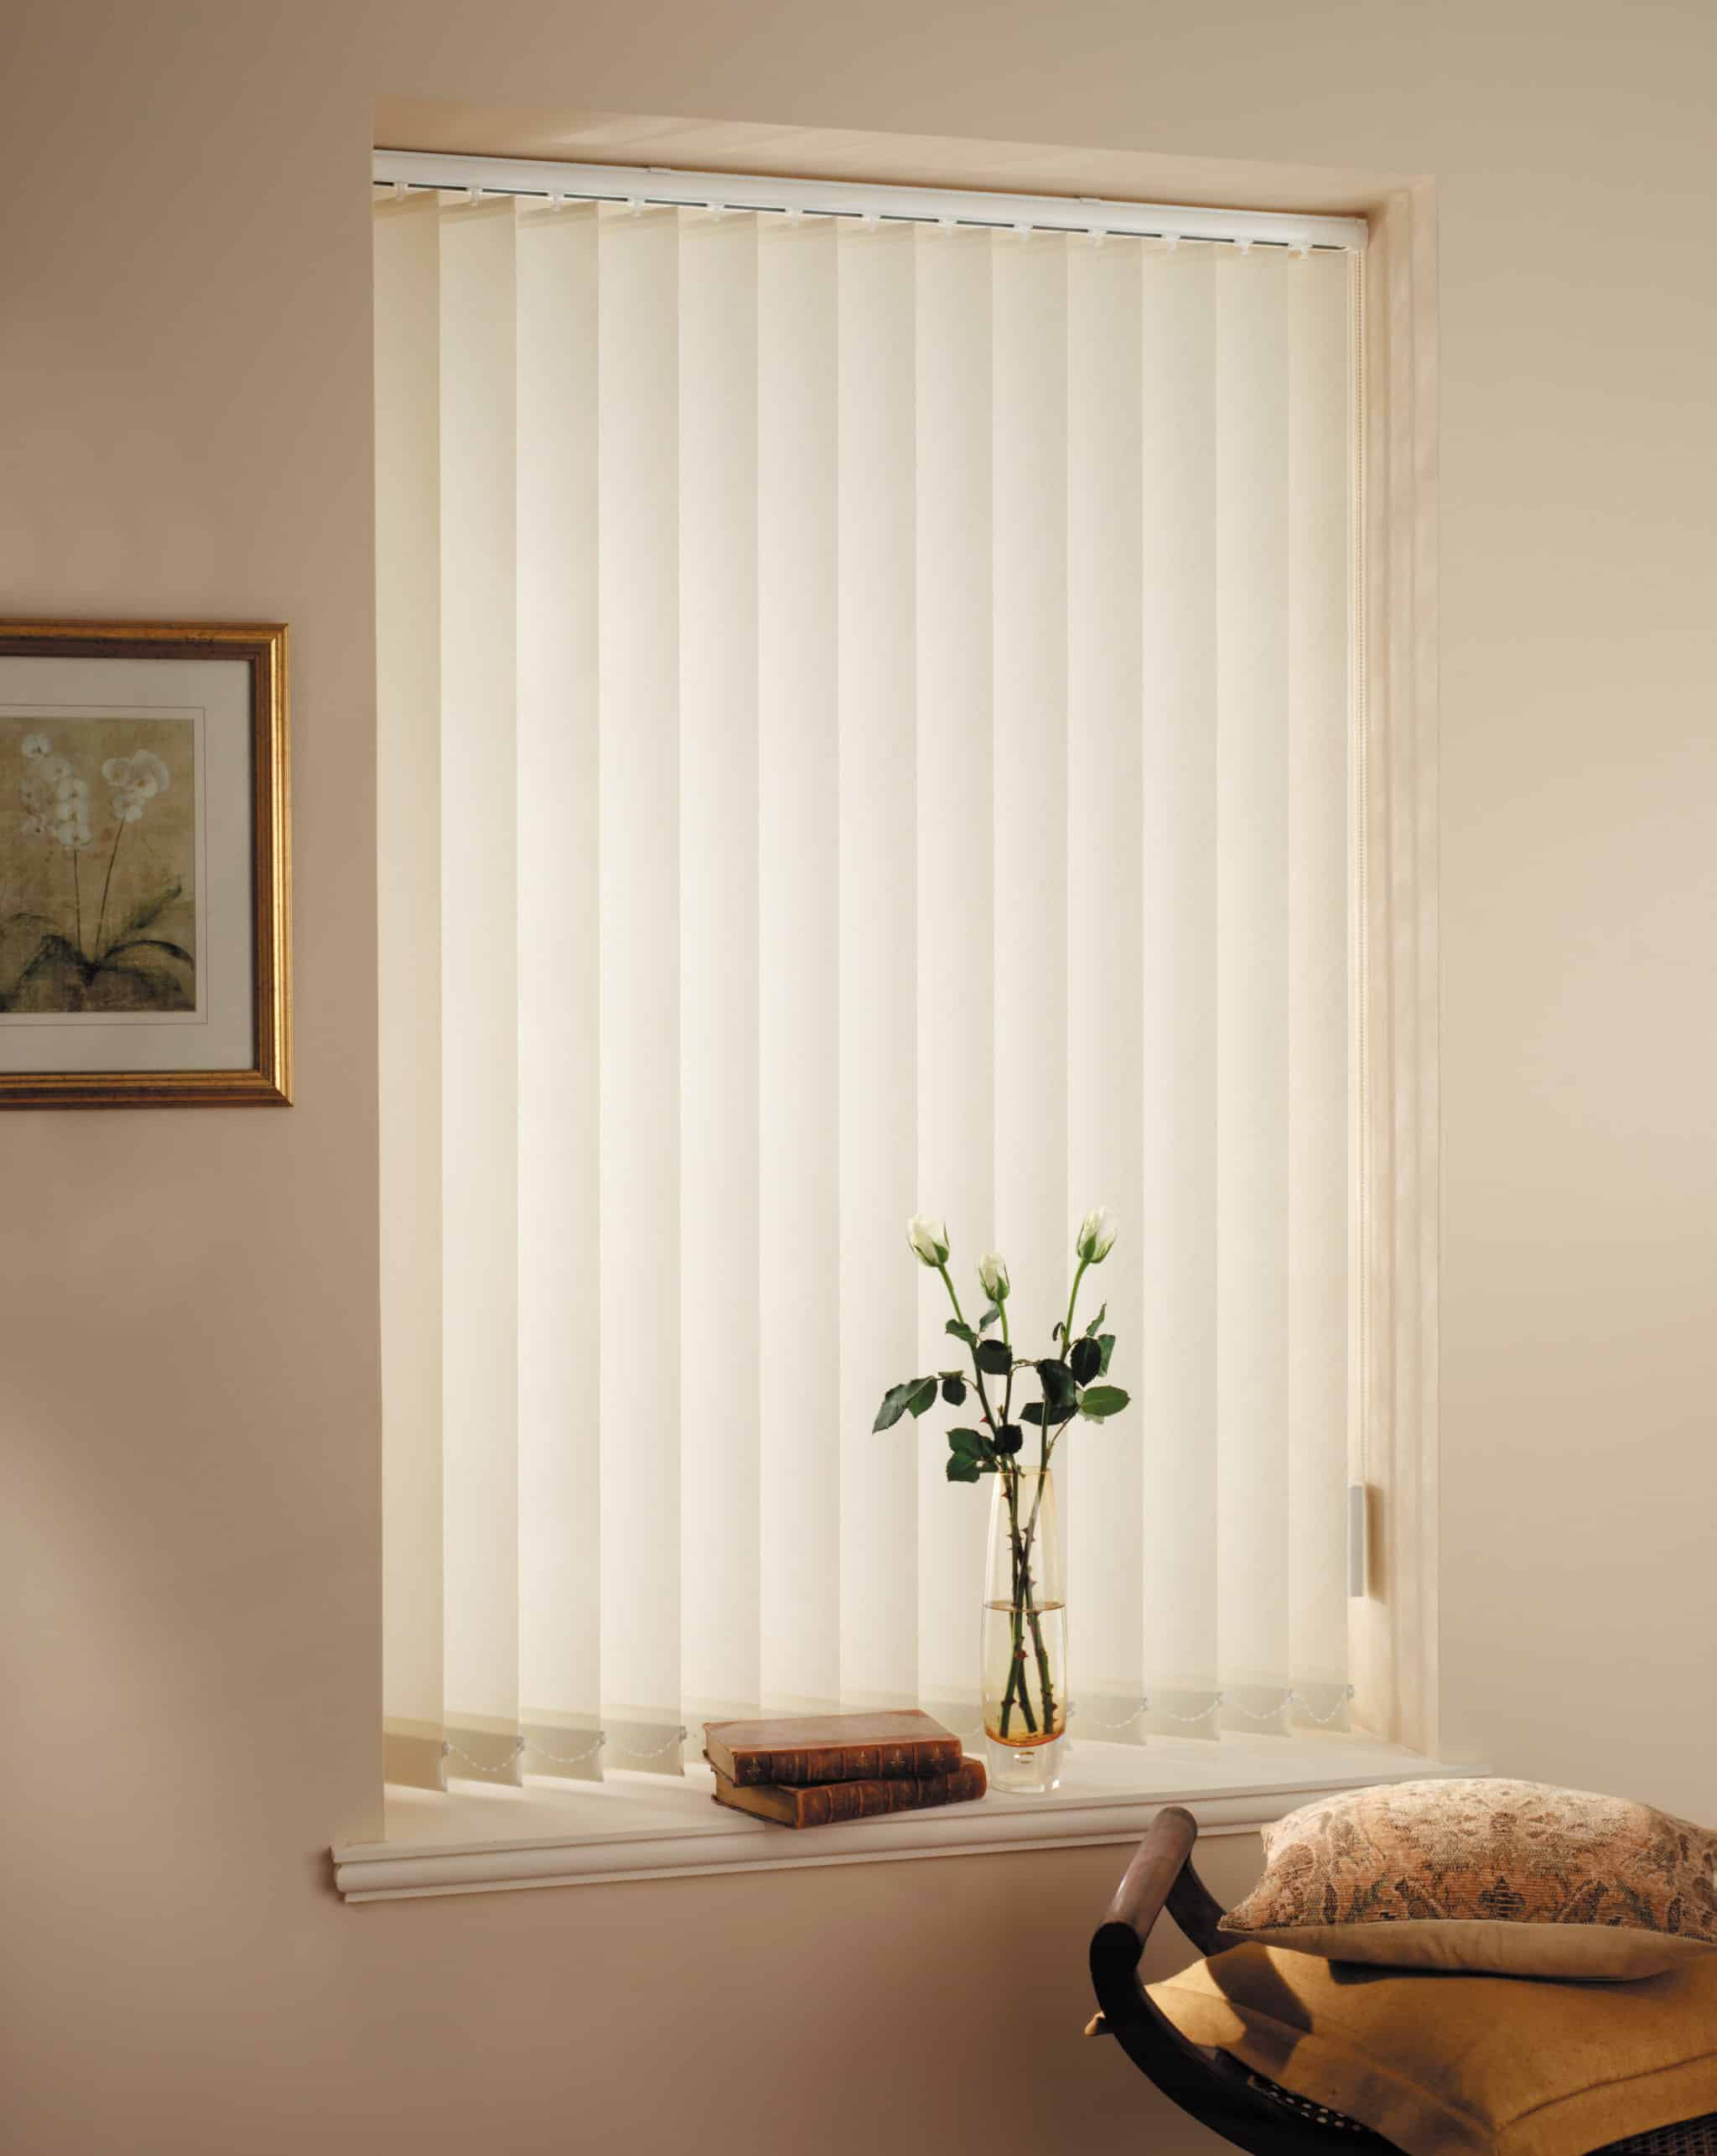 shades blind cellular day interiors roman next alpha blinds